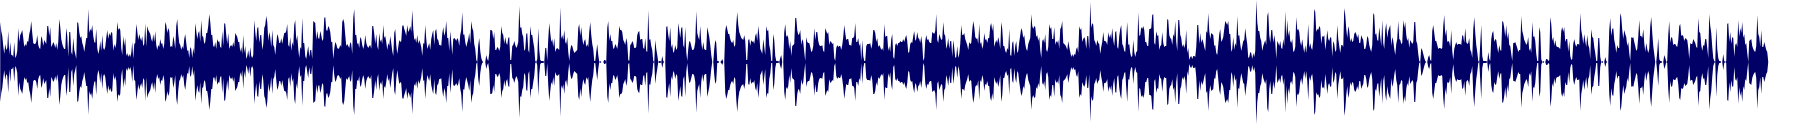 waveform of track #70289